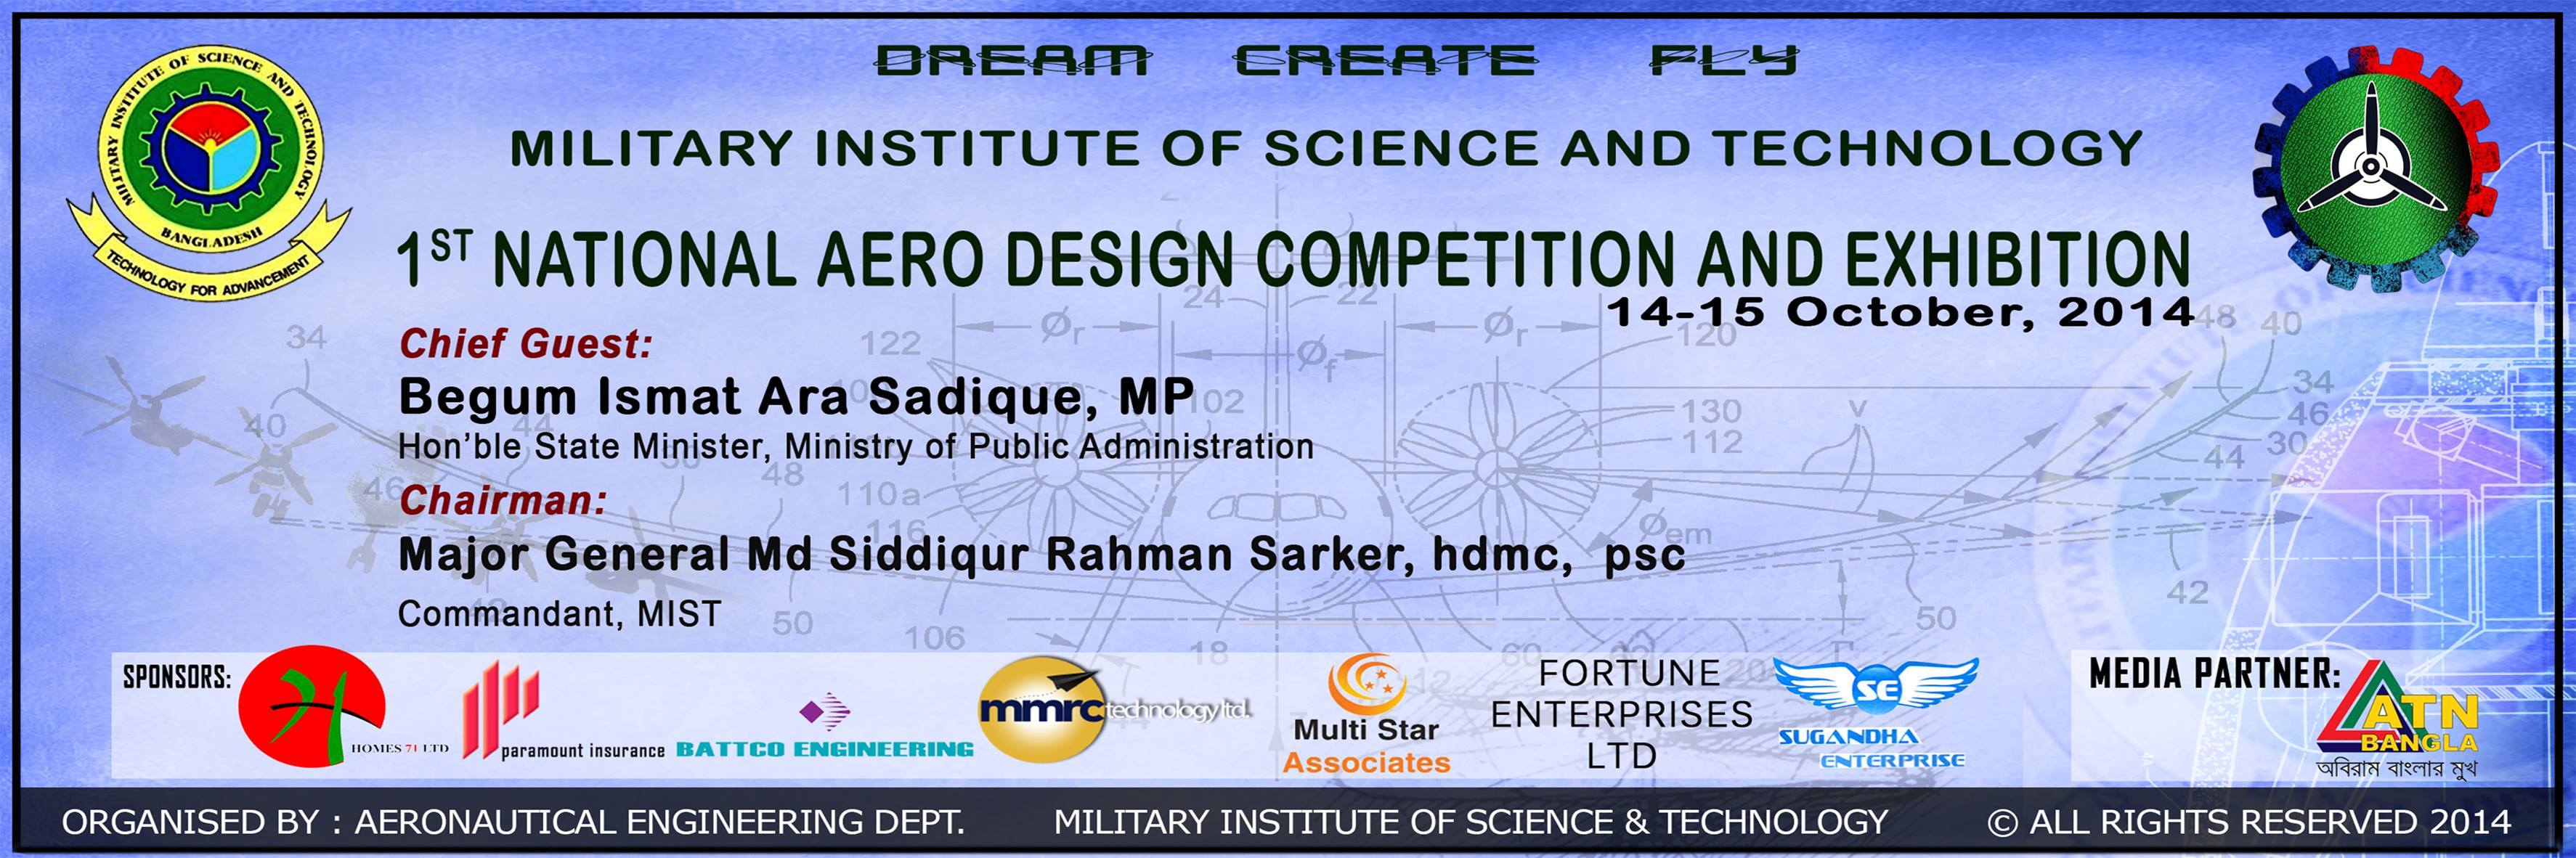 National Aero Design Competition & Exhibition